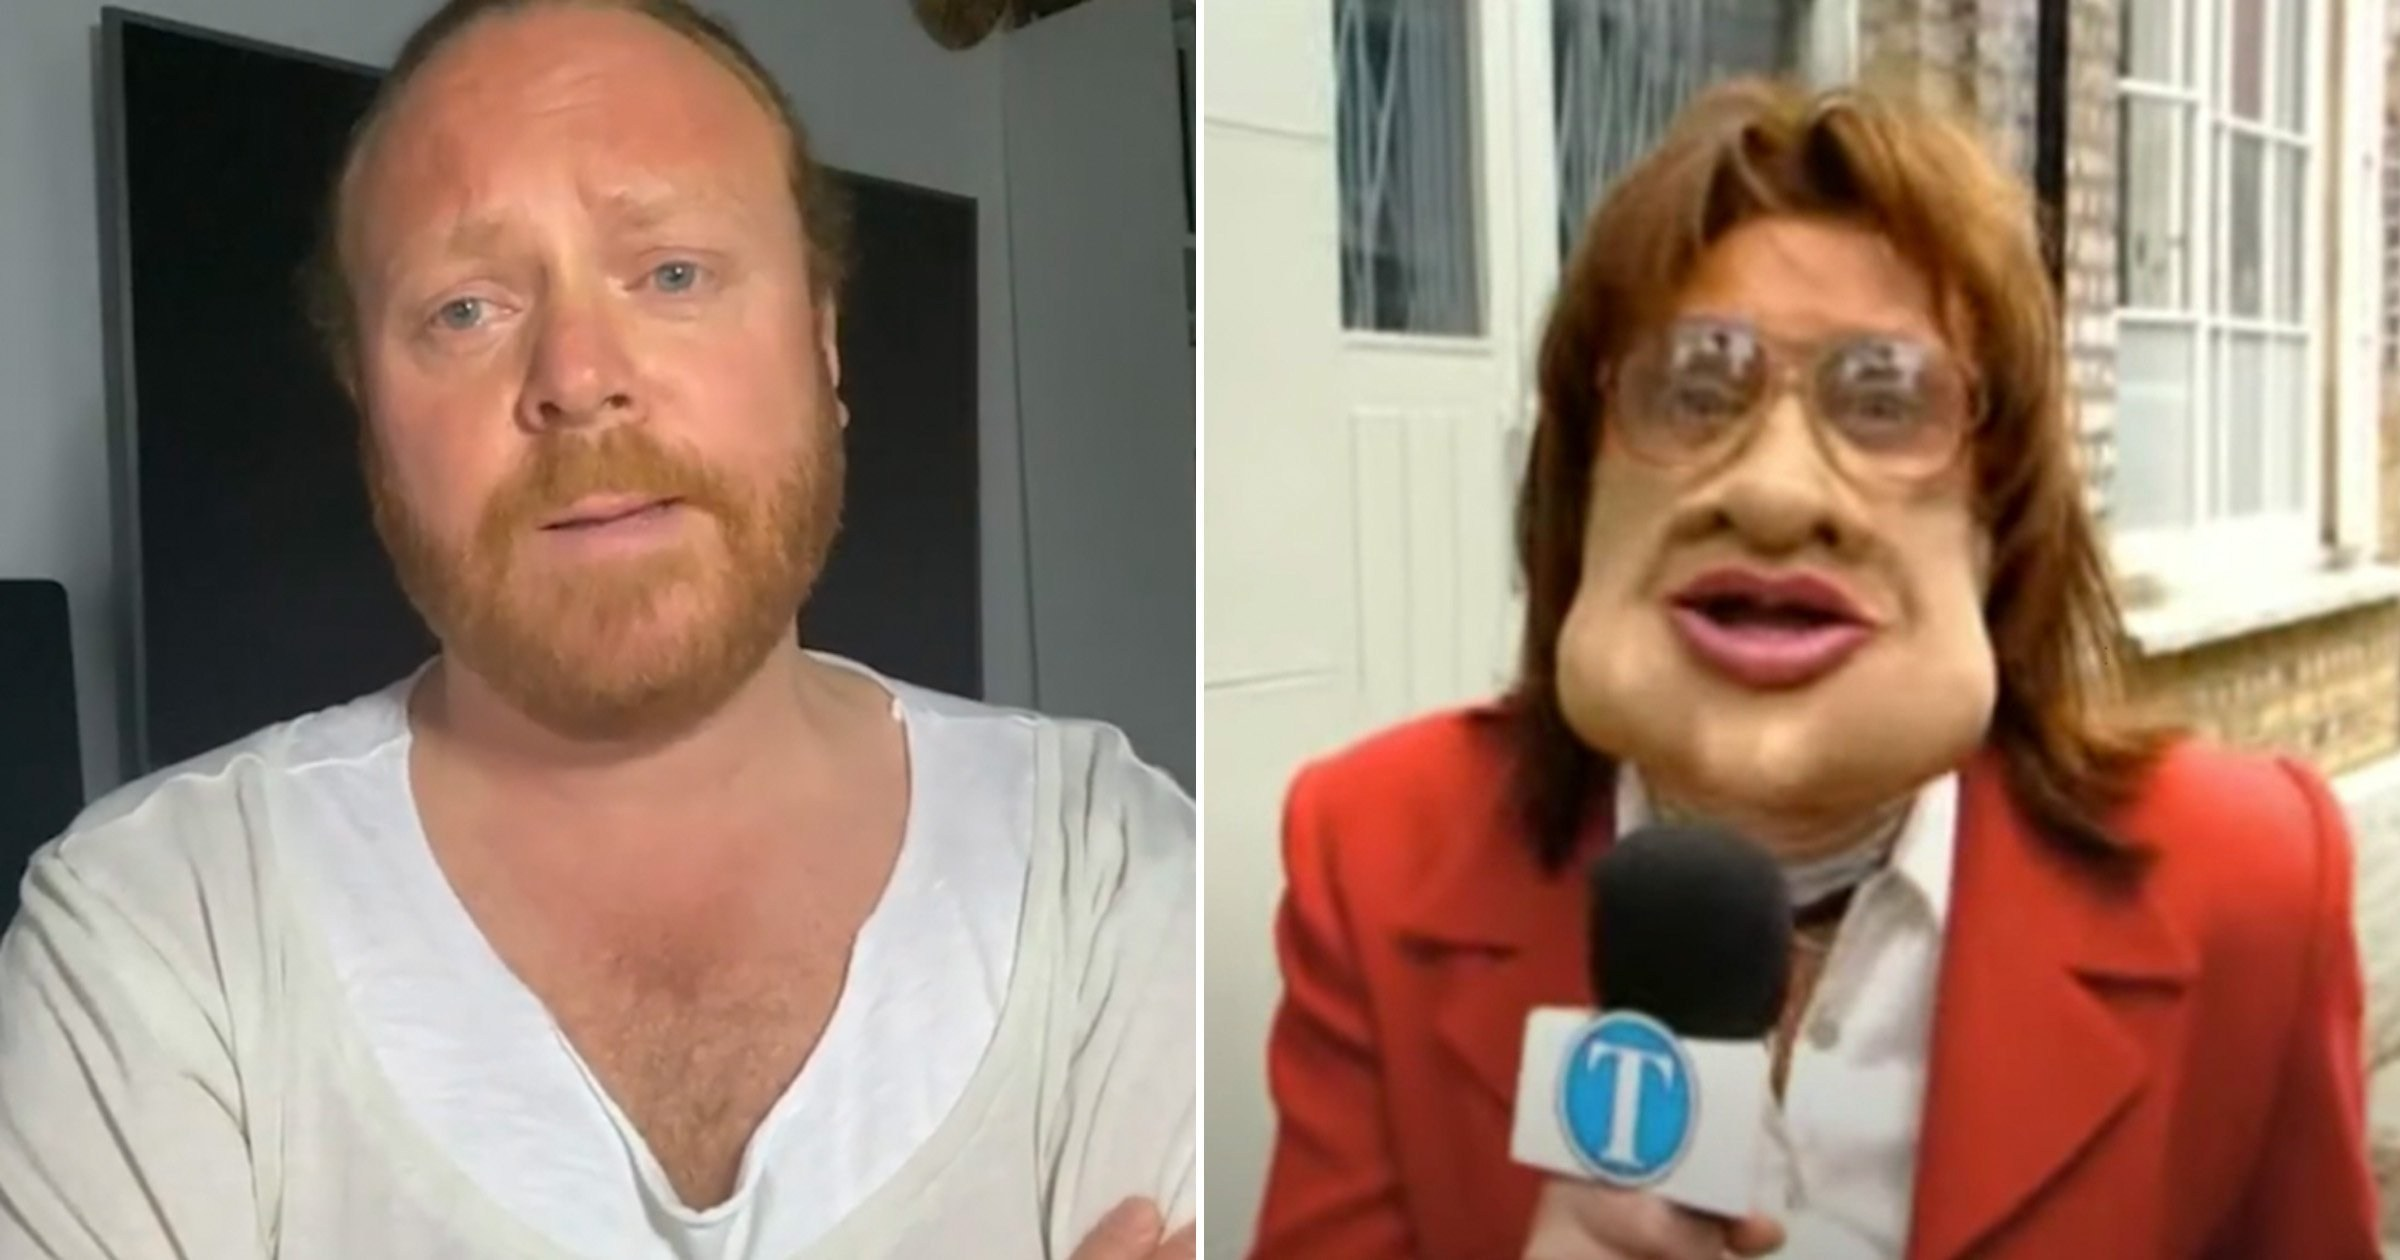 Channel 4 pulls Bo' Selecta from All 4 following Leigh Francis' apology for using blackface